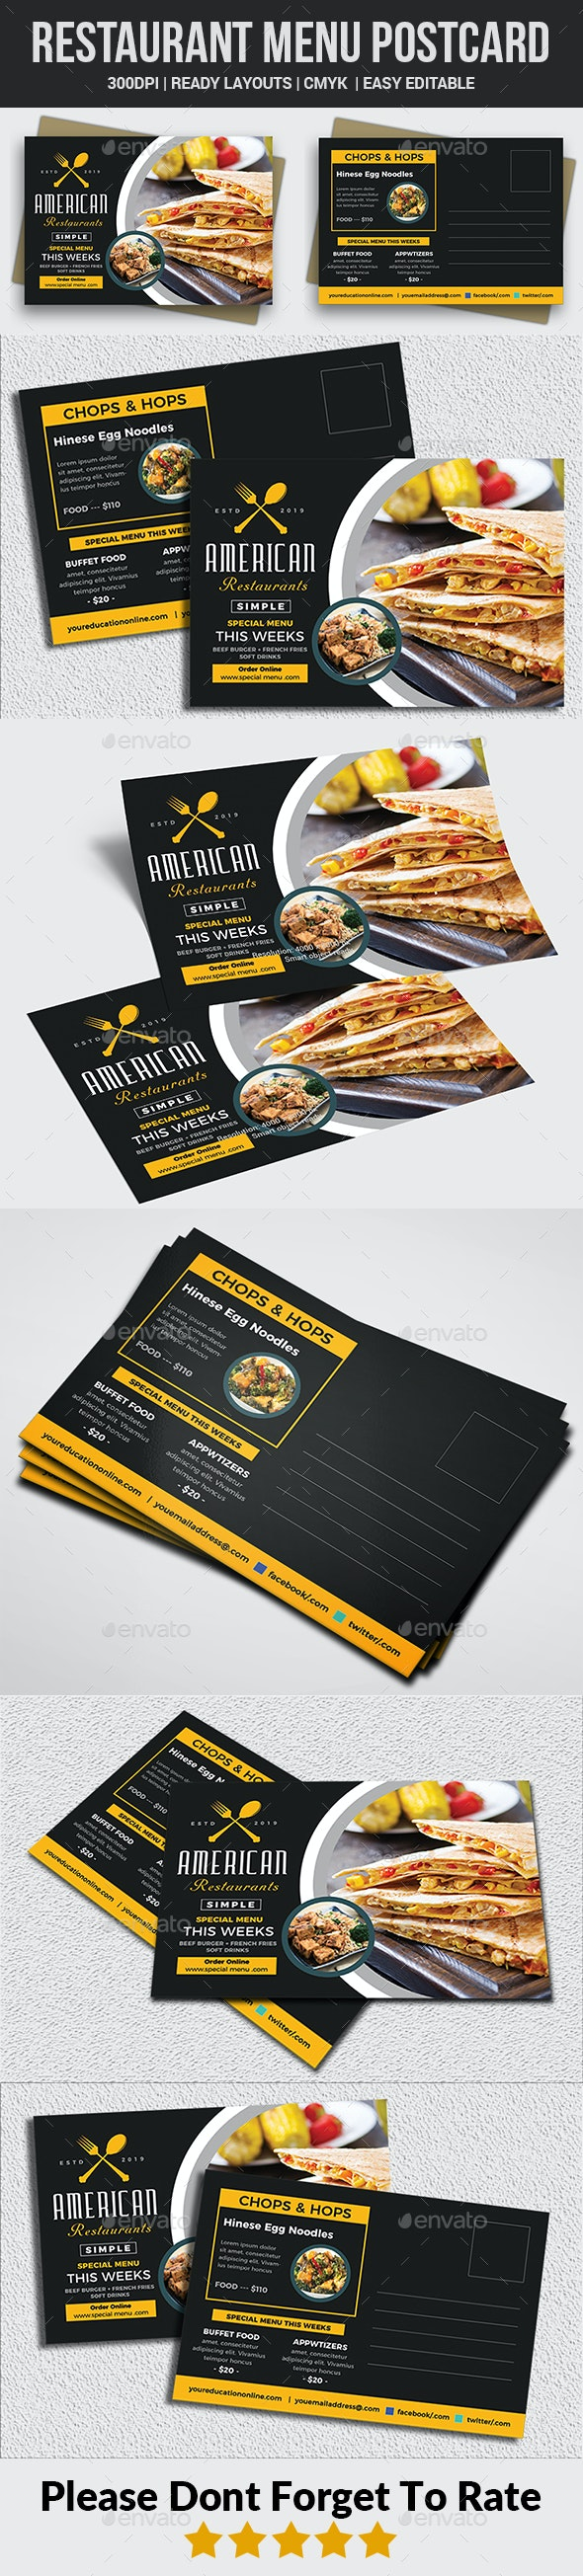 Restaurant Menu Postcard - Cards & Invites Print Templates